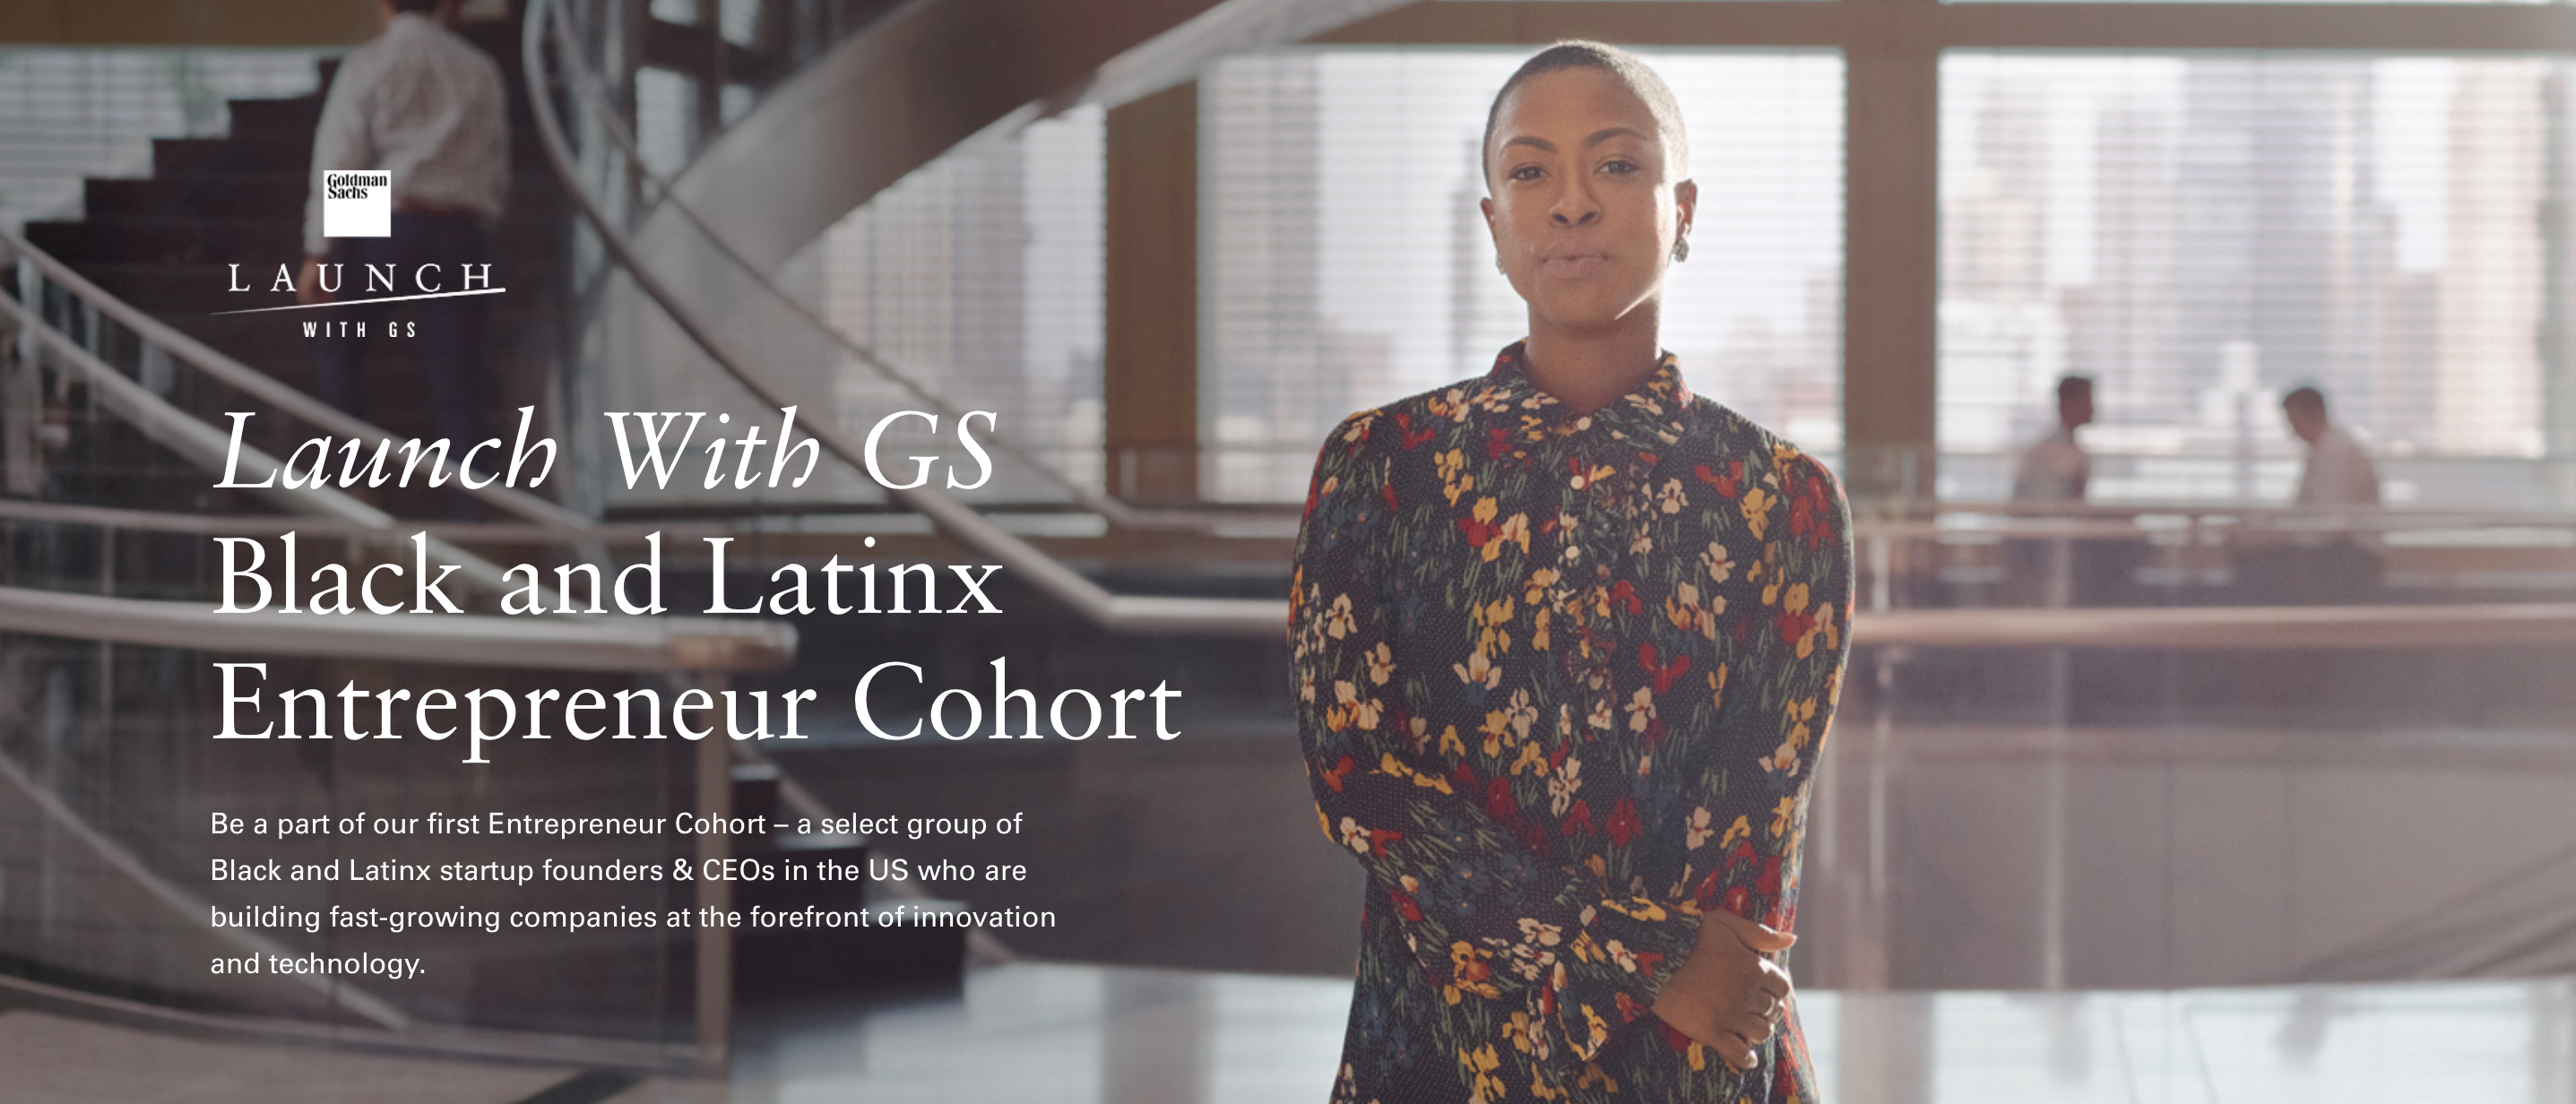 Launch With GS Black and Latinx Entrepreneur Cohort